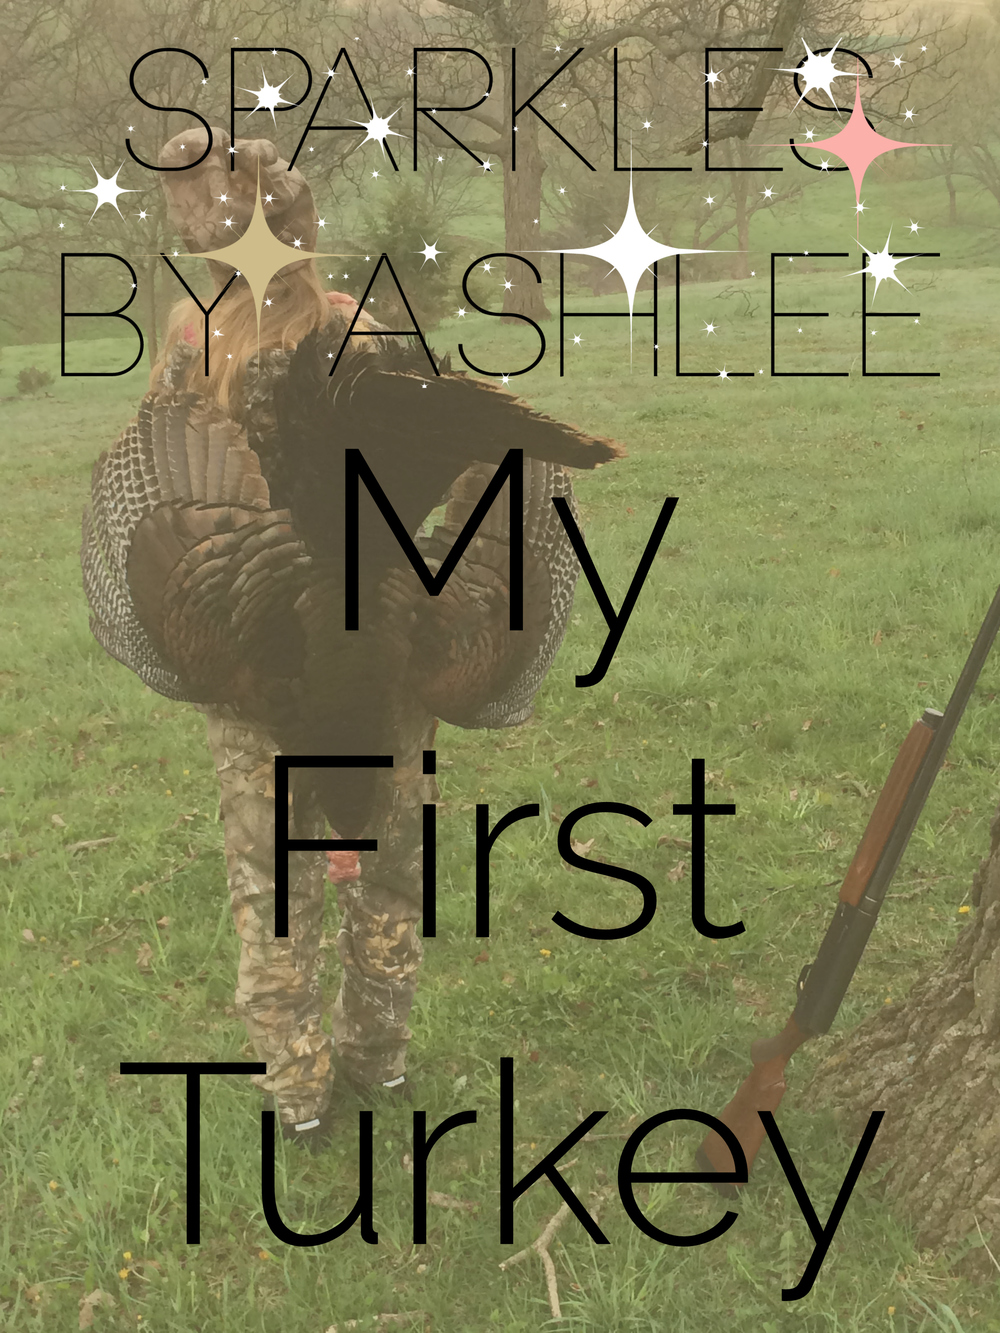 My-First-Turkey-Sparkles-by-Ashlee.jpg